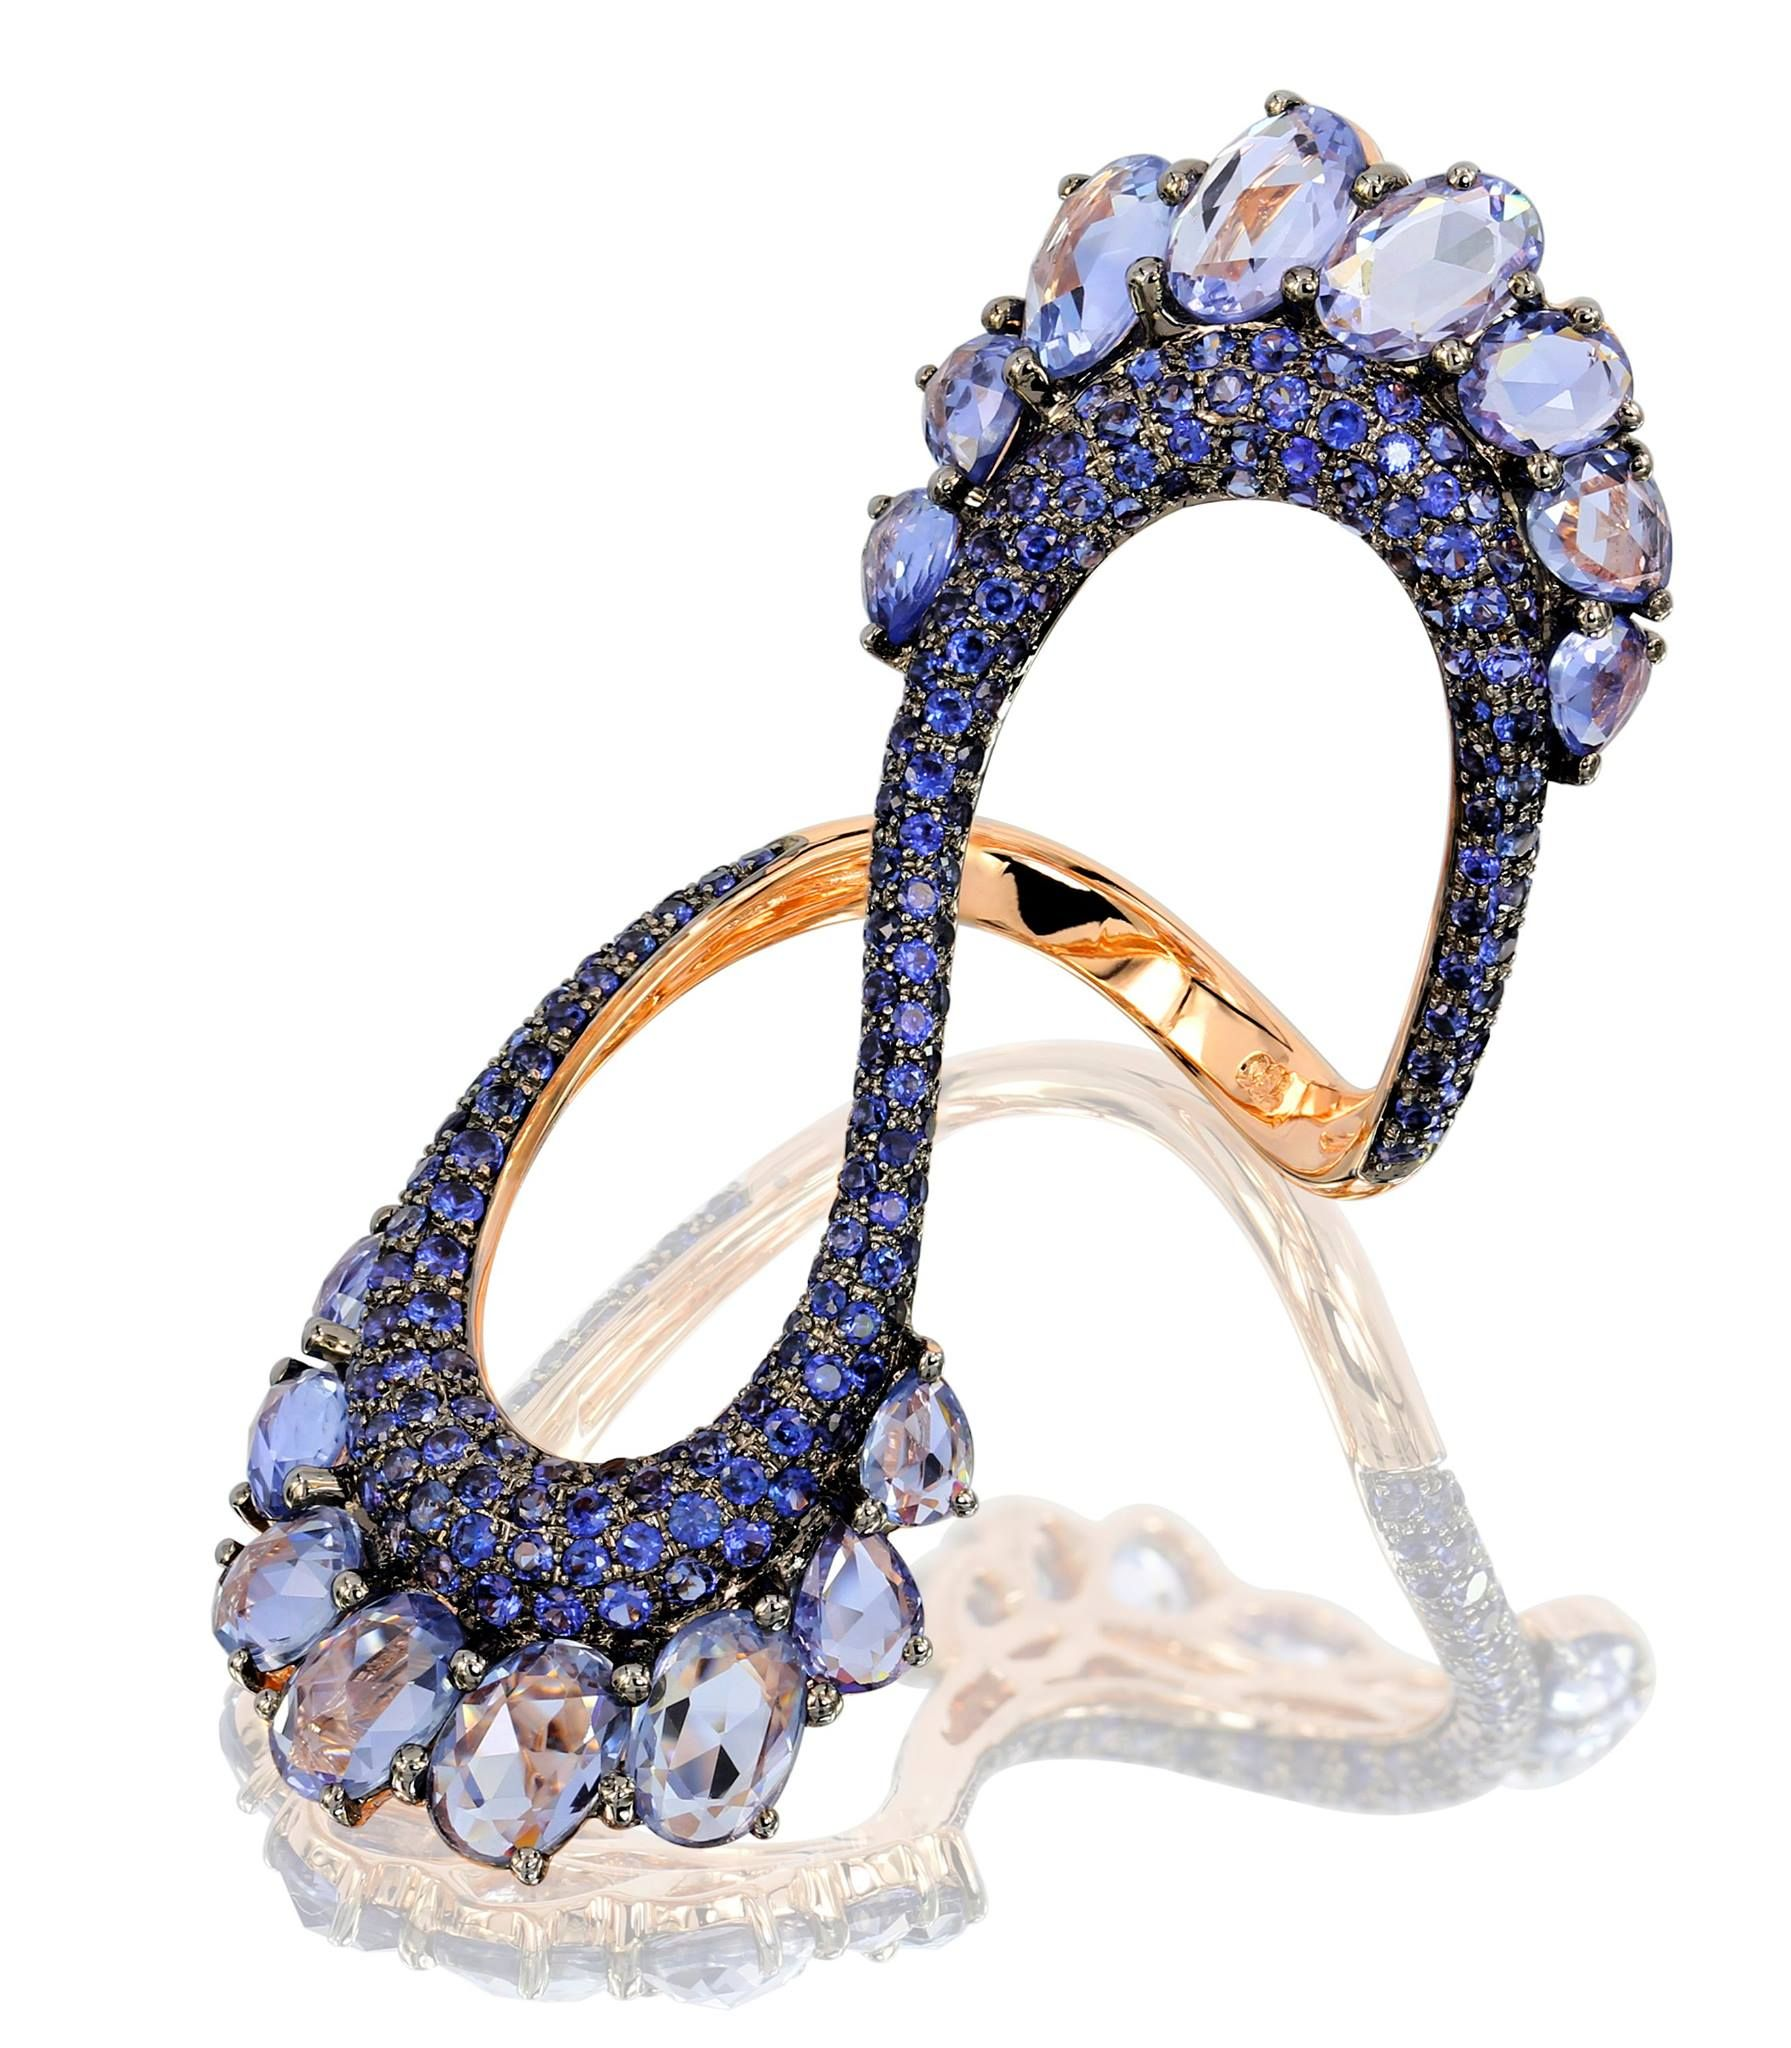 sapphire an between diamonds diamond is details sparkling multicolor ring by size rings fine sapphires lines several prong jewelry set channel of colorful round and lanae array